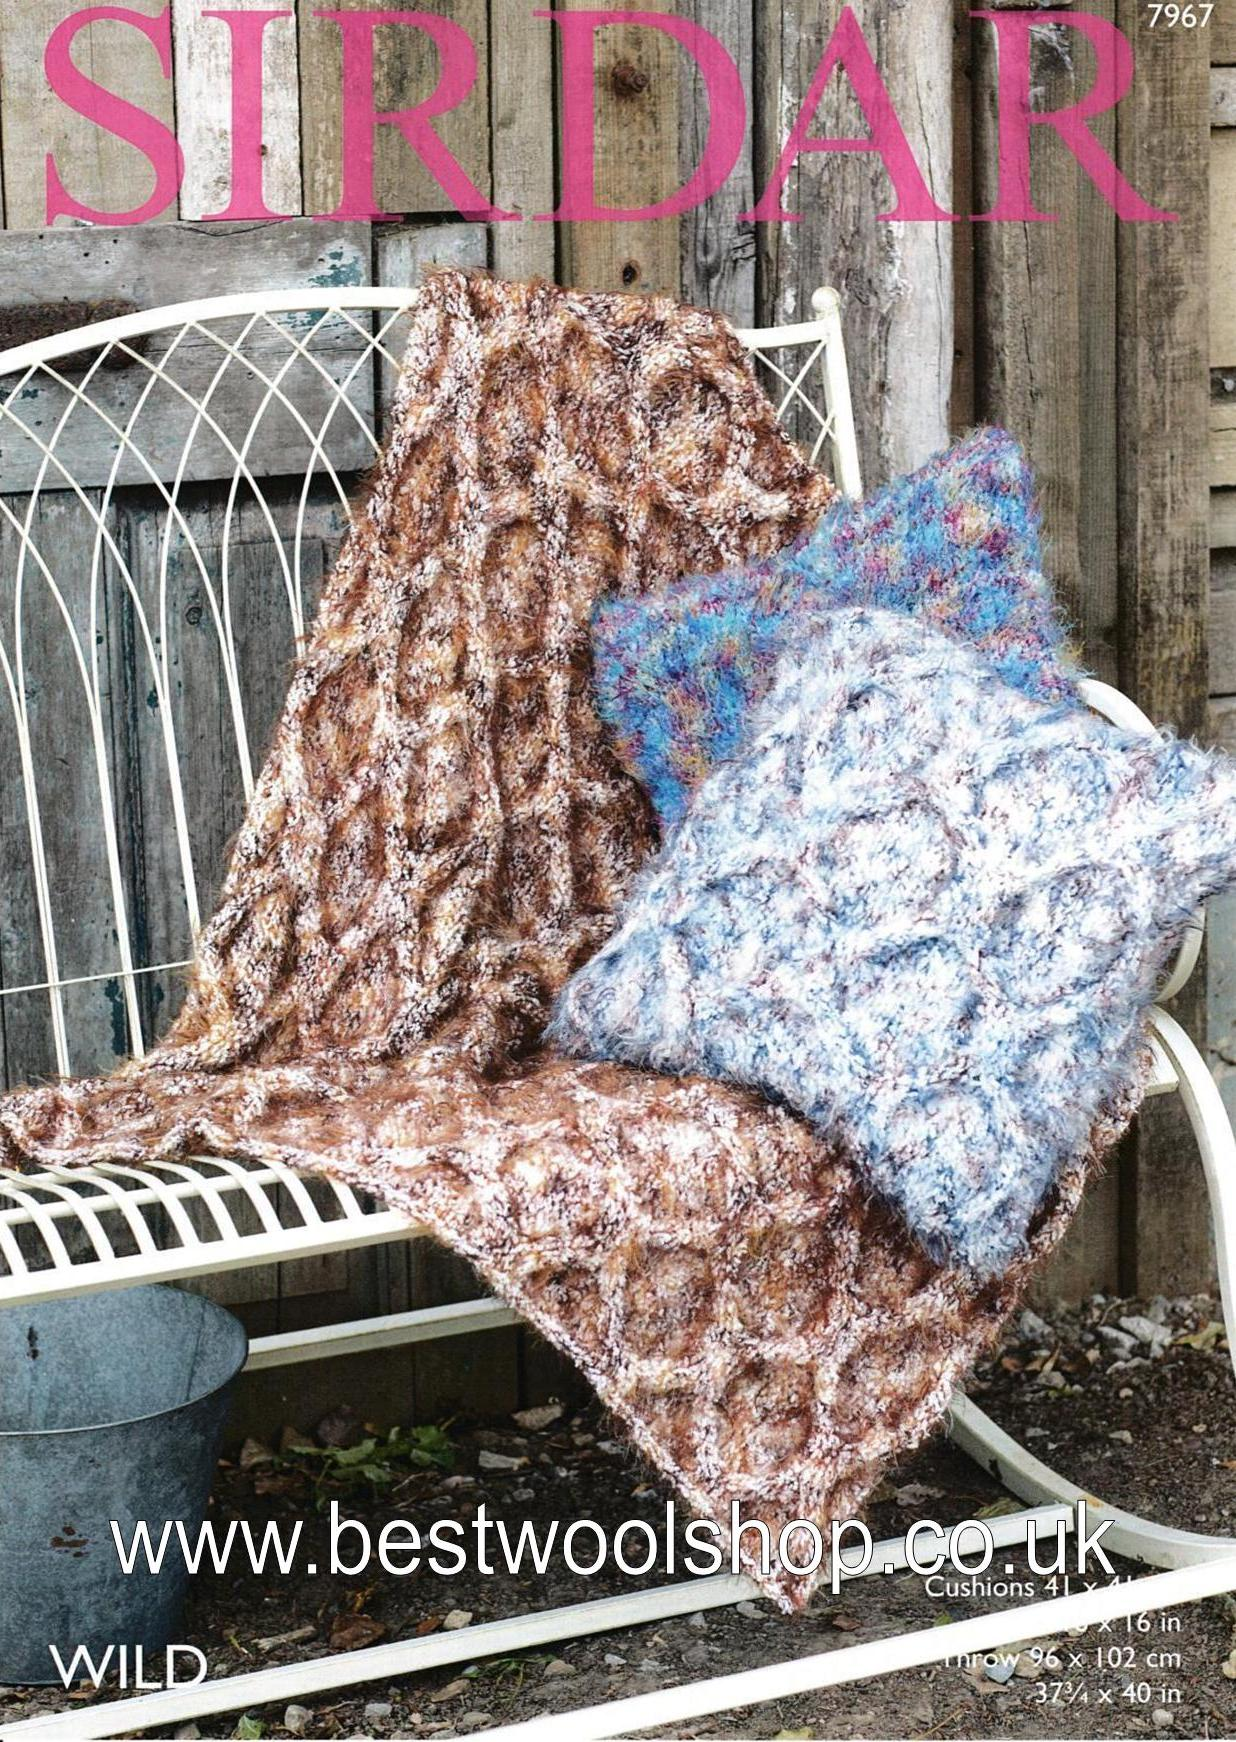 7967 - SIRDAR WILD SUPER CHUNKY CUSHION & THROW BLANKET KNITTING PATTERN